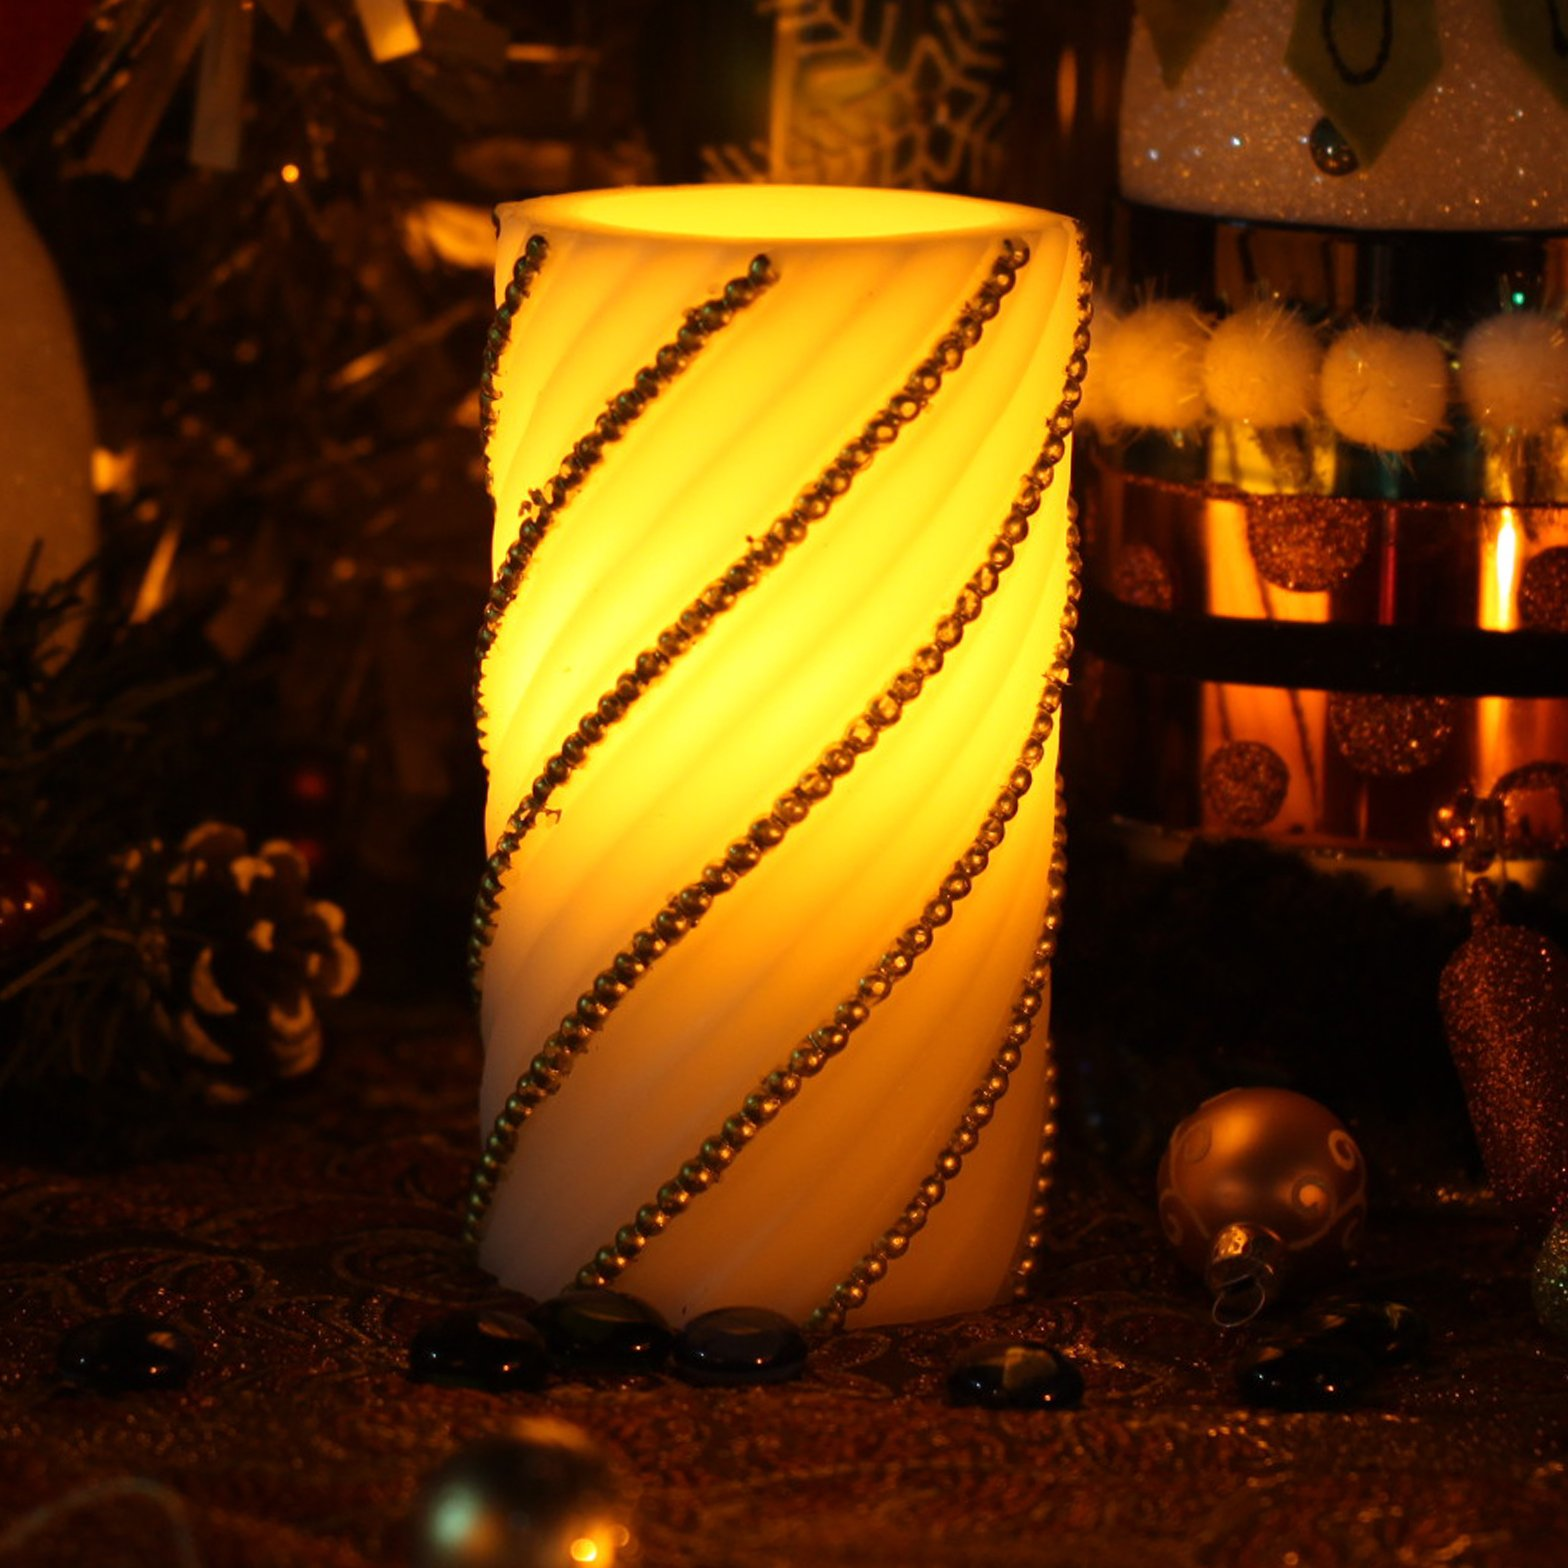 Twill Pattern Flameless Led Candle With Timer,3x6 inches